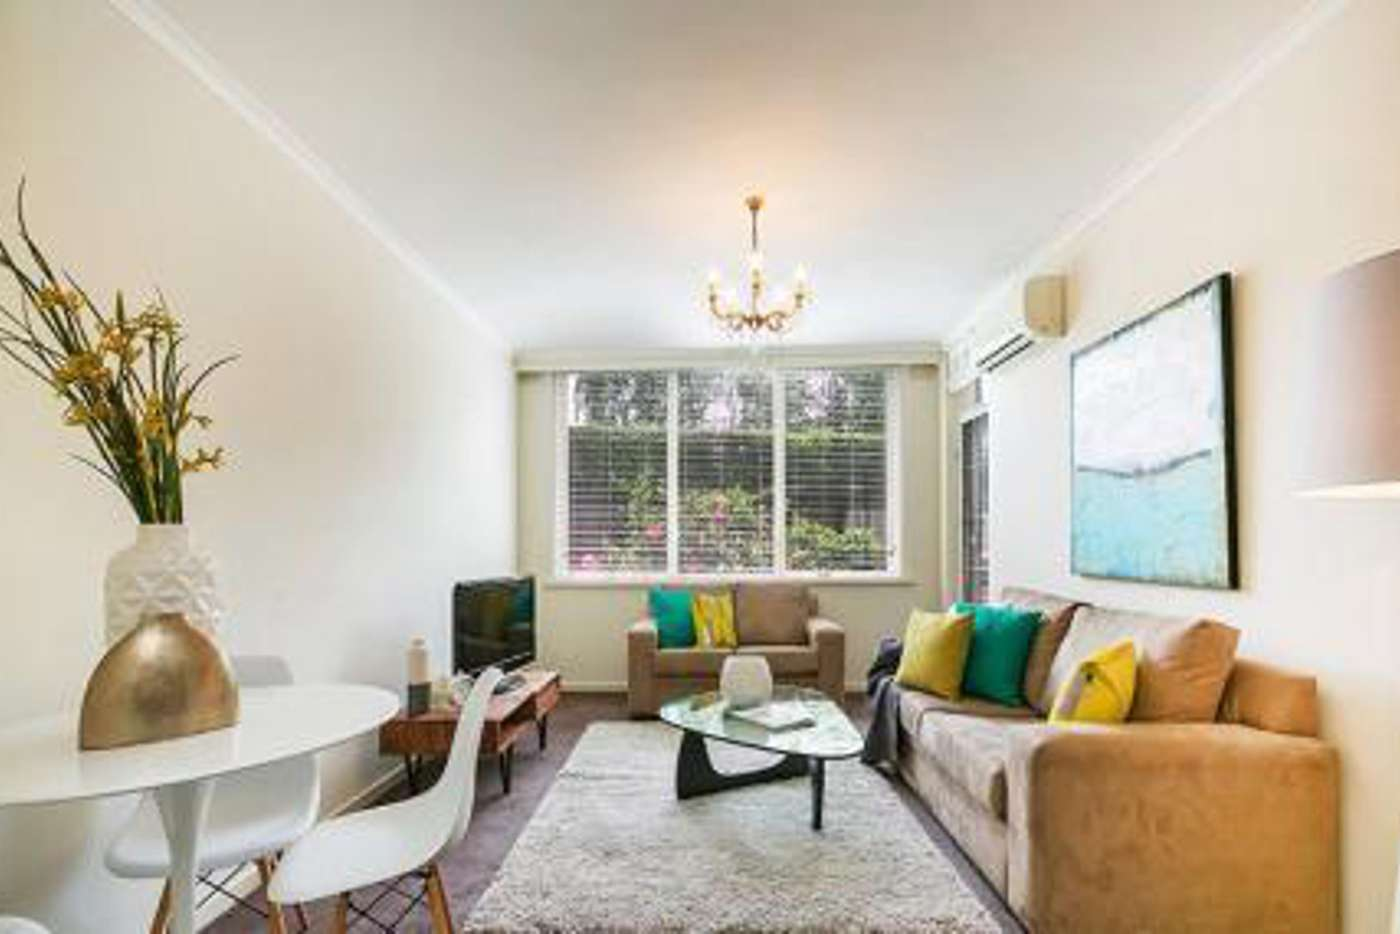 Main view of Homely apartment listing, 4/7 Sutherland Road, Armadale VIC 3143